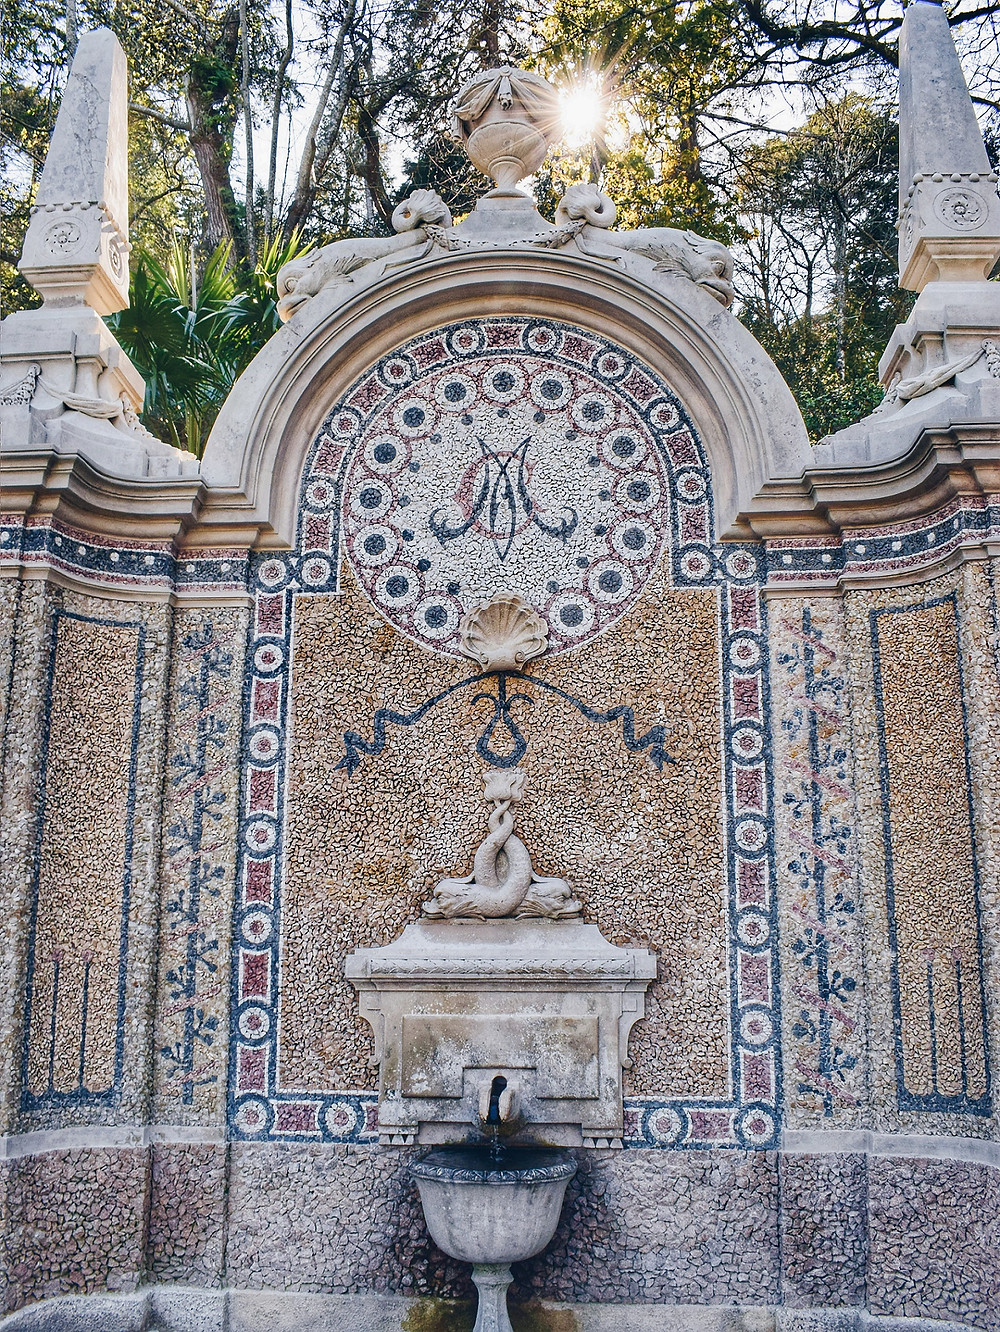 Fountain of Plenty in the Quinta gardens